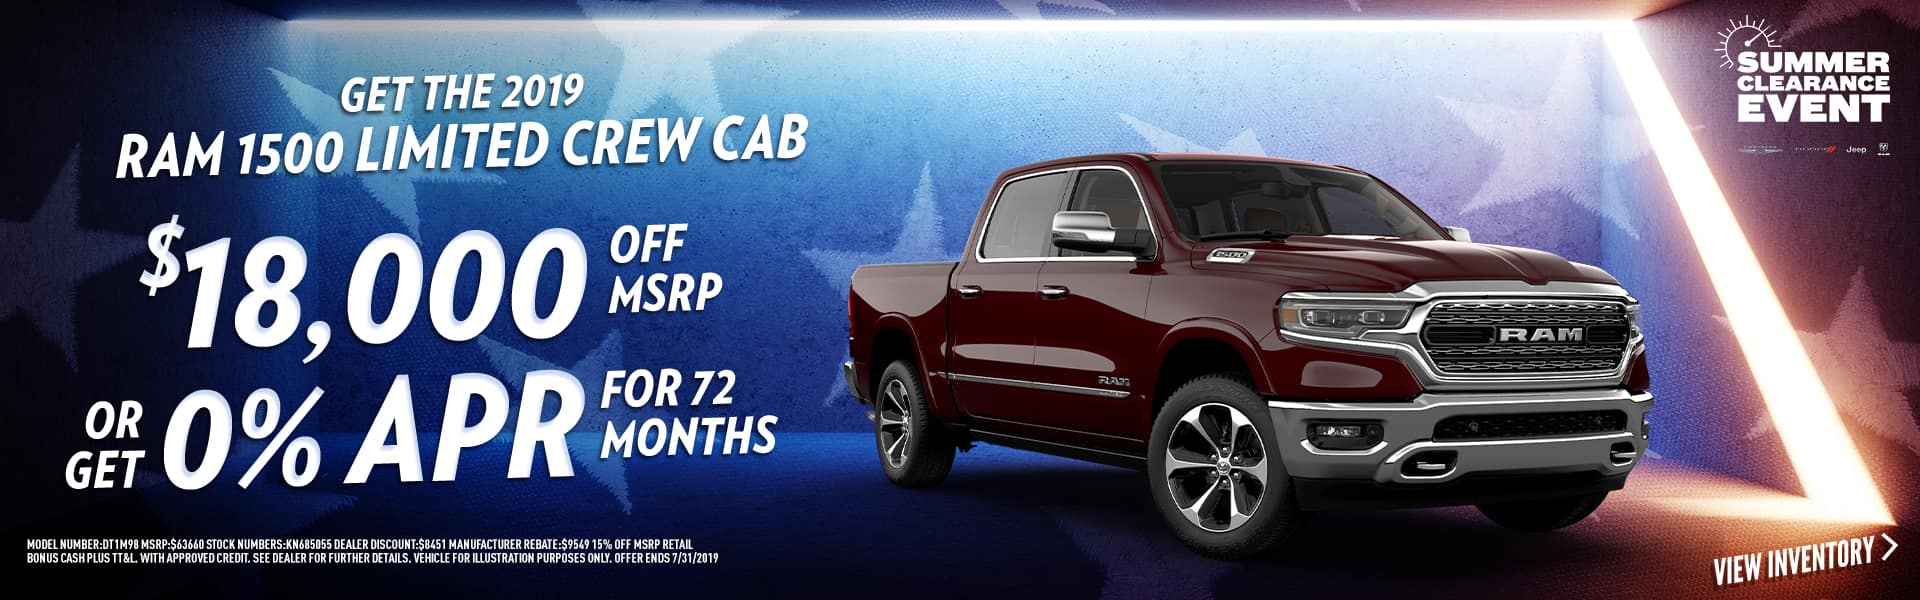 lease-2019-ram-1500-limited-crew-cab-18000-off-msrp-beaumont